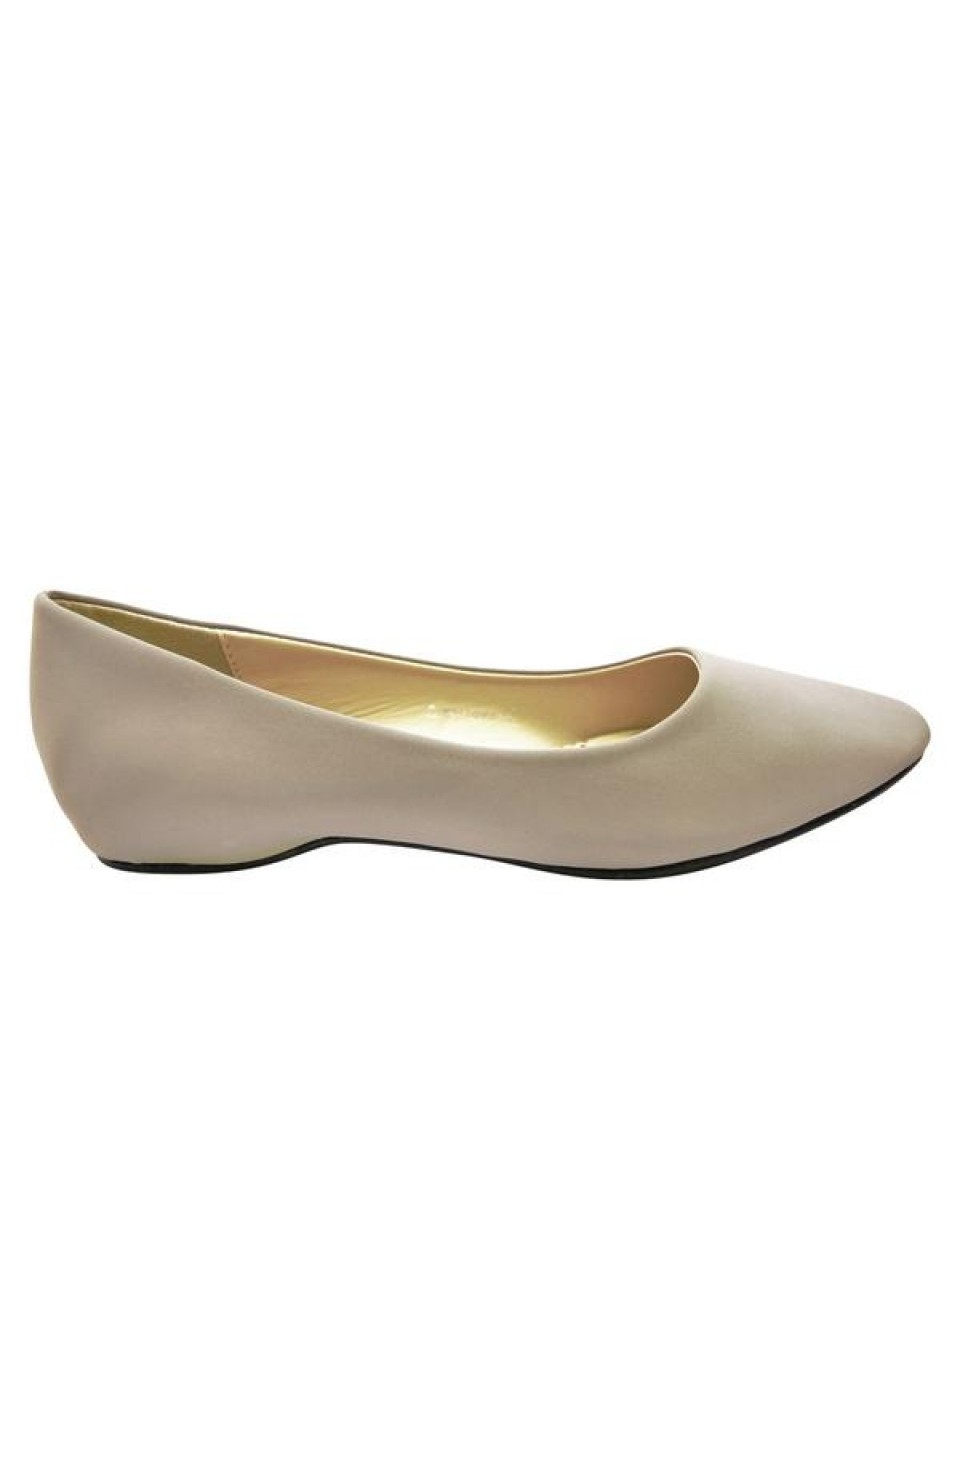 Women's Grey Manmade Smarrillee Smooth Pump Flat with Gently Pointed Toe